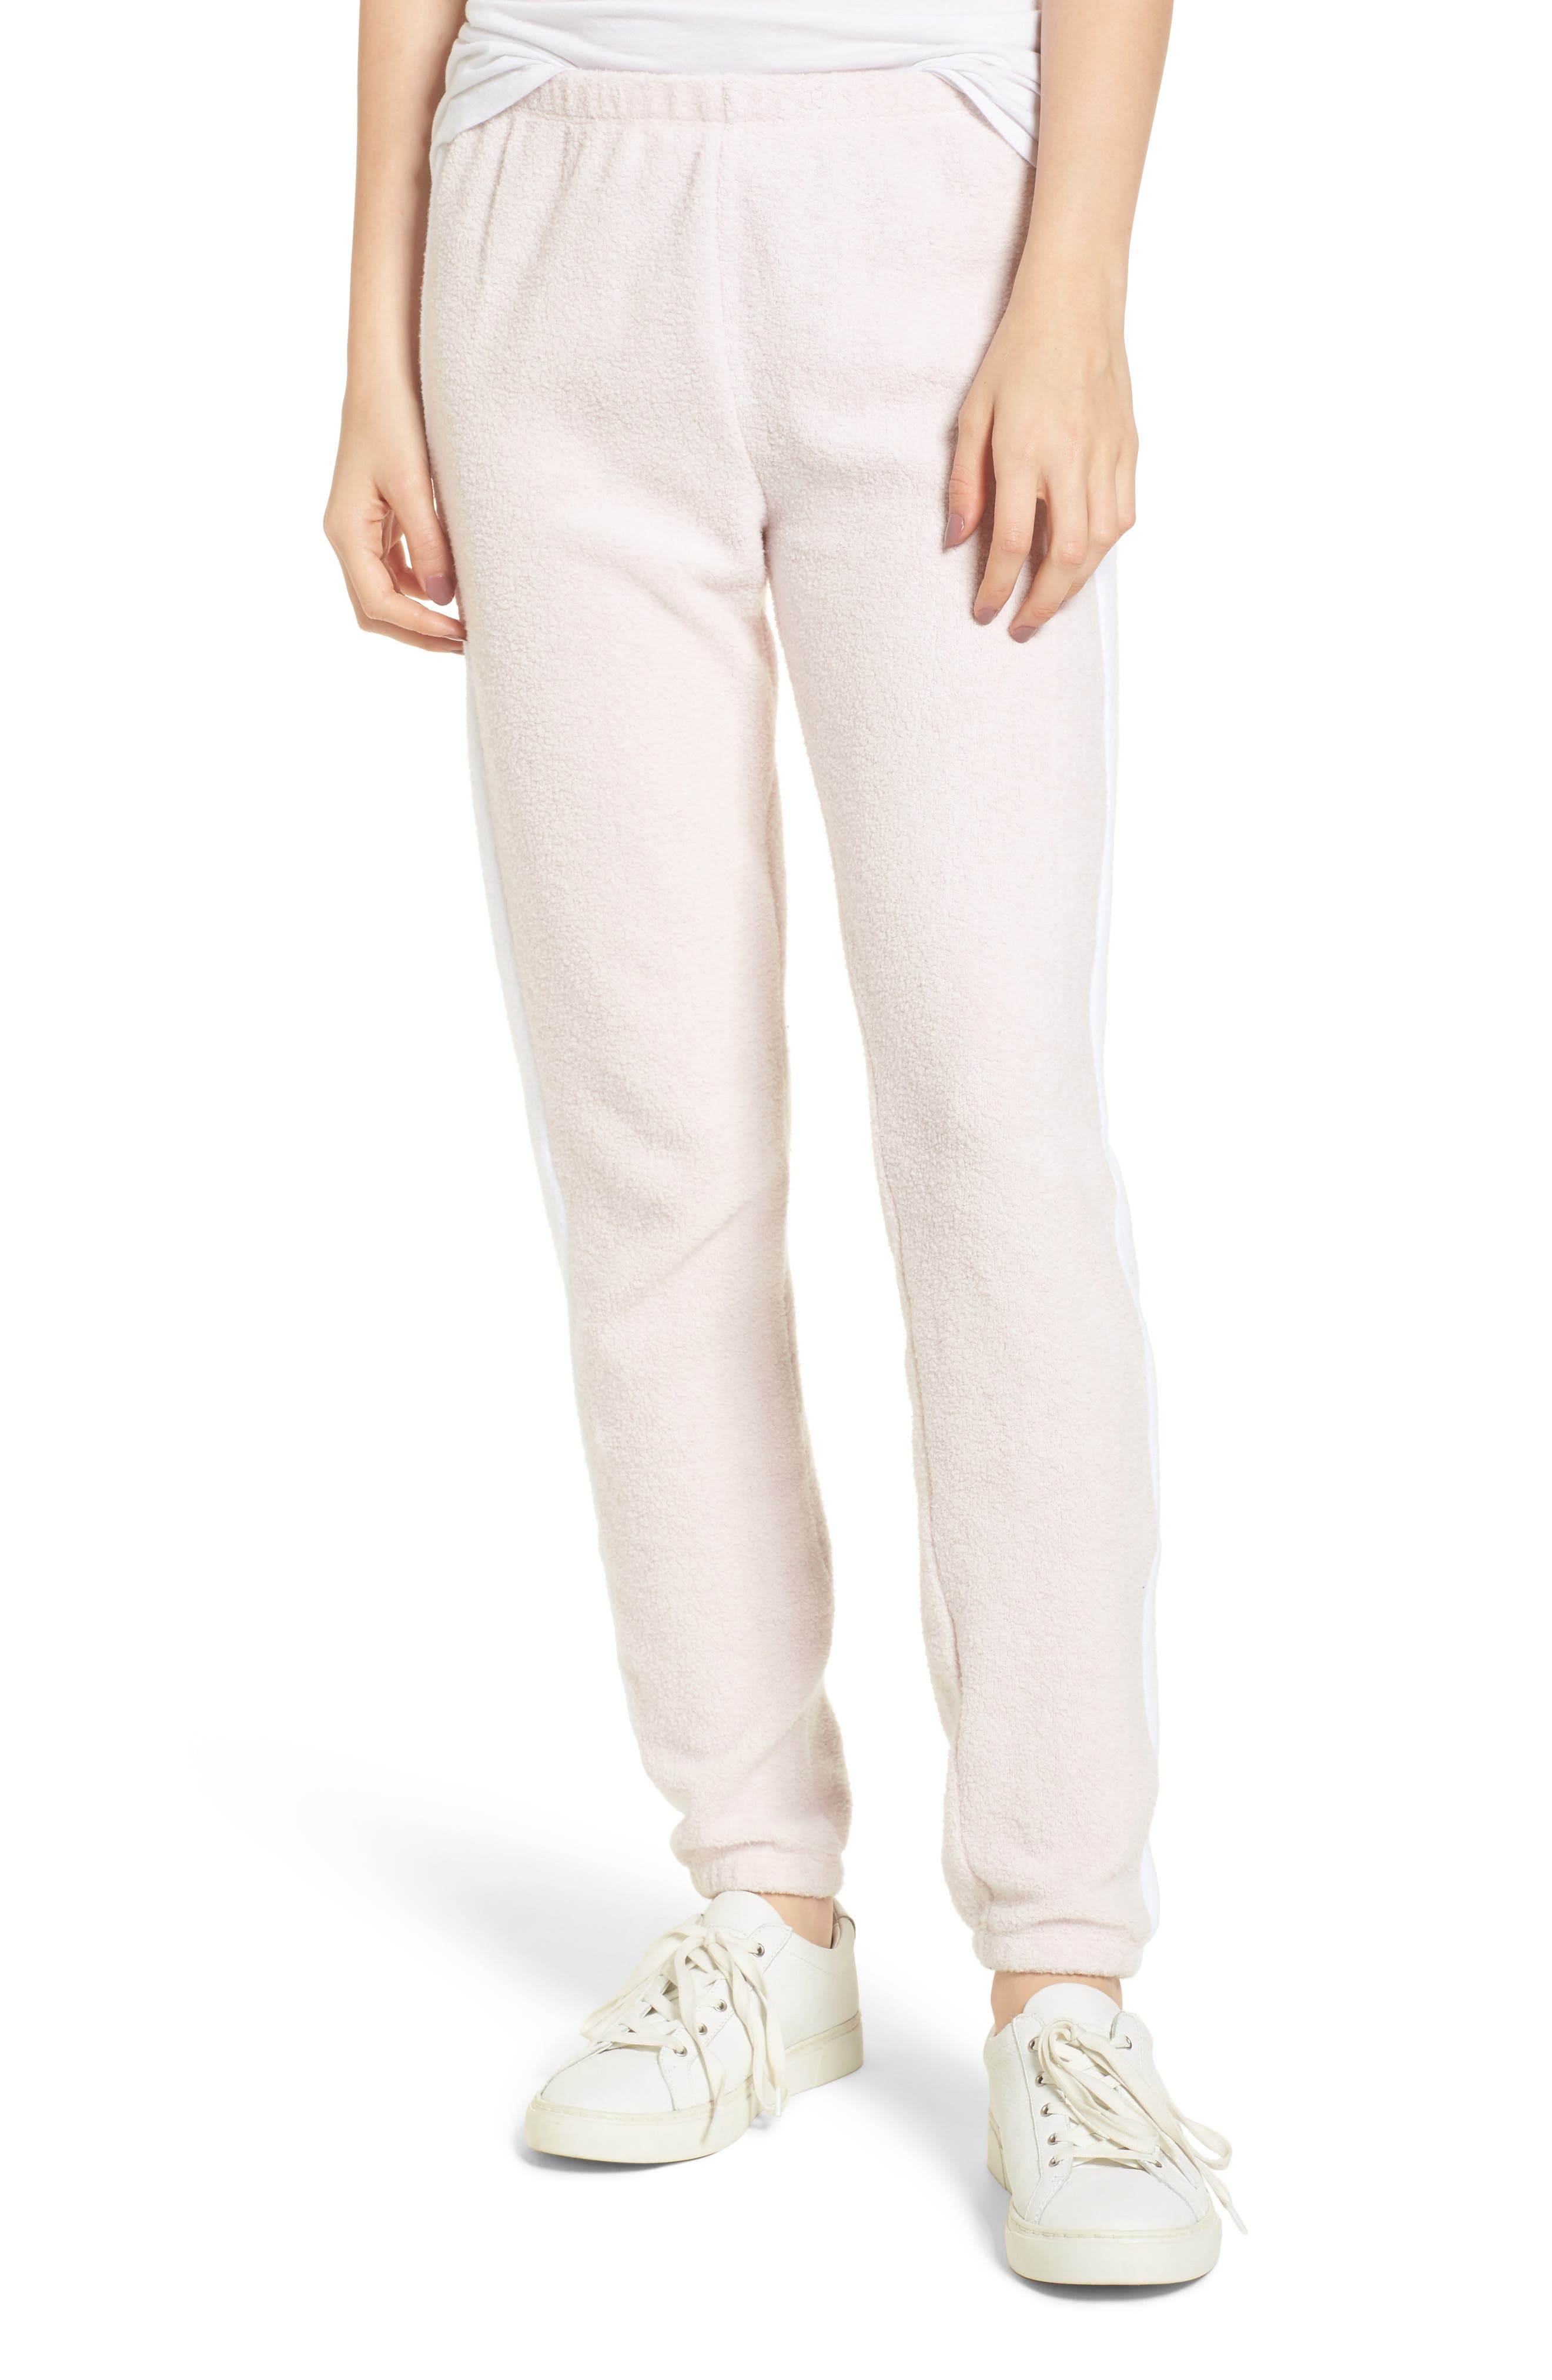 Track Star Knox Sweatpants,                         Main,                         color, Iced Lavender